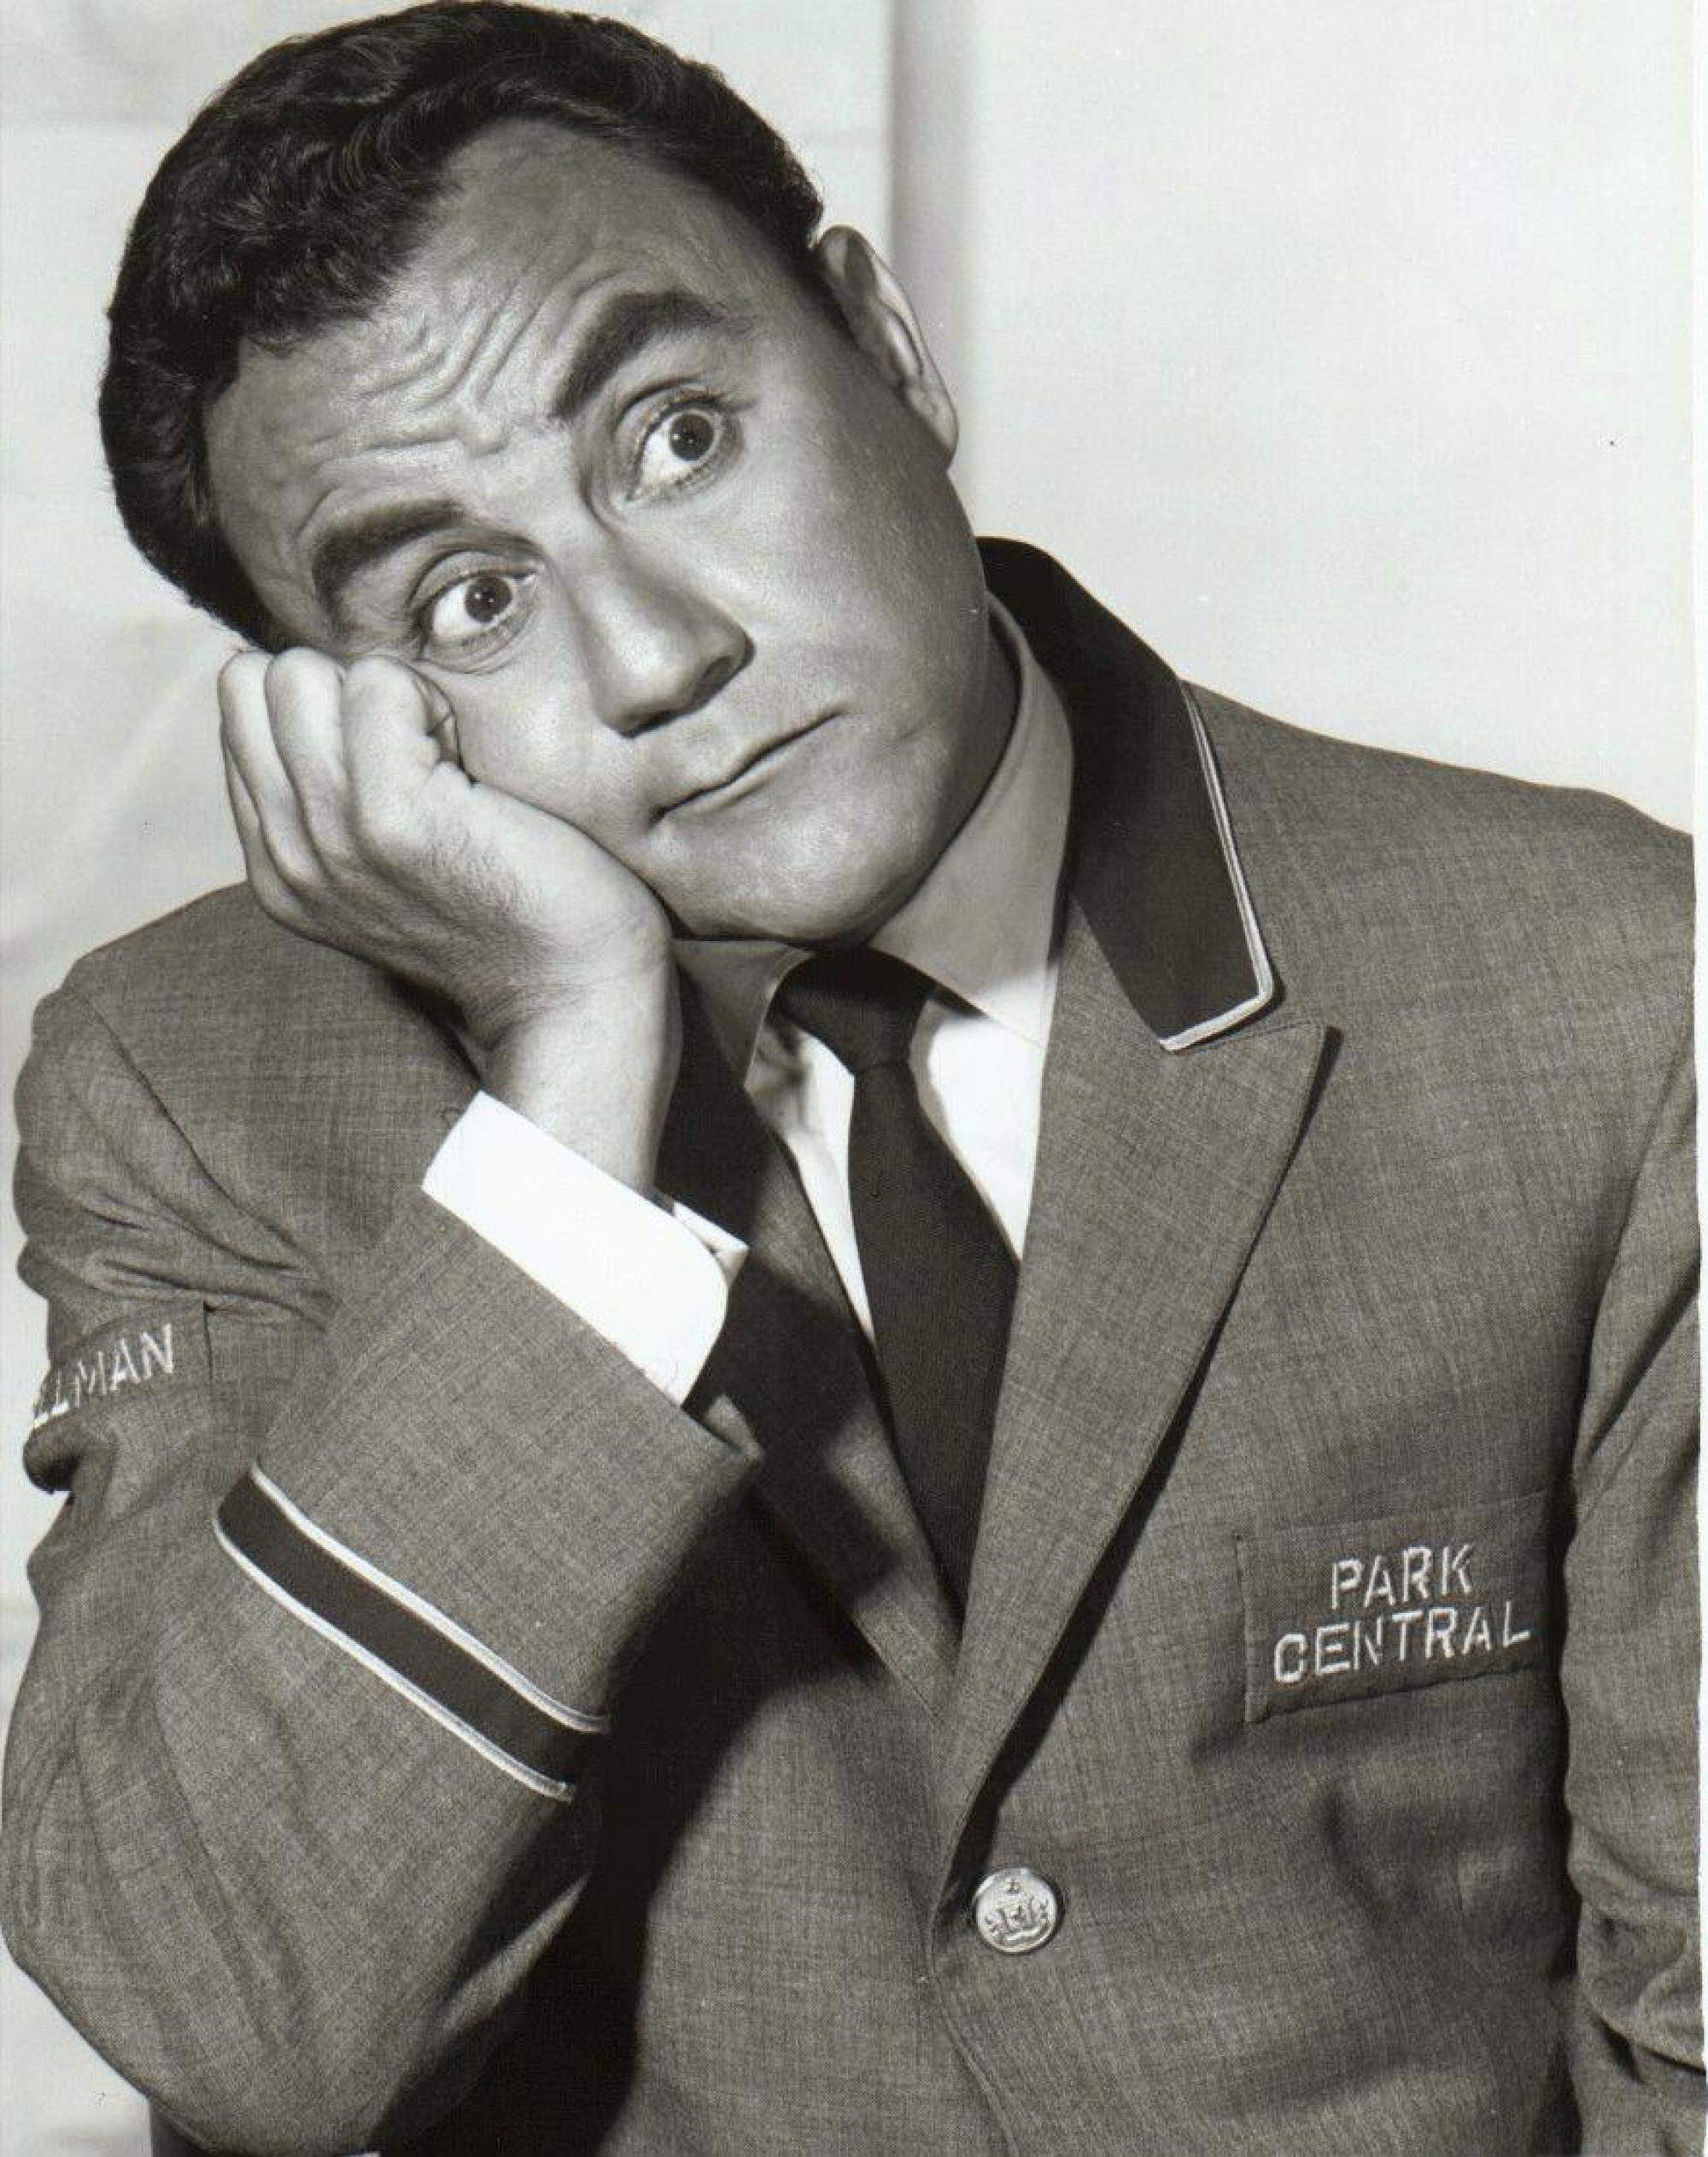 Bill Dana as Jose Jimenez